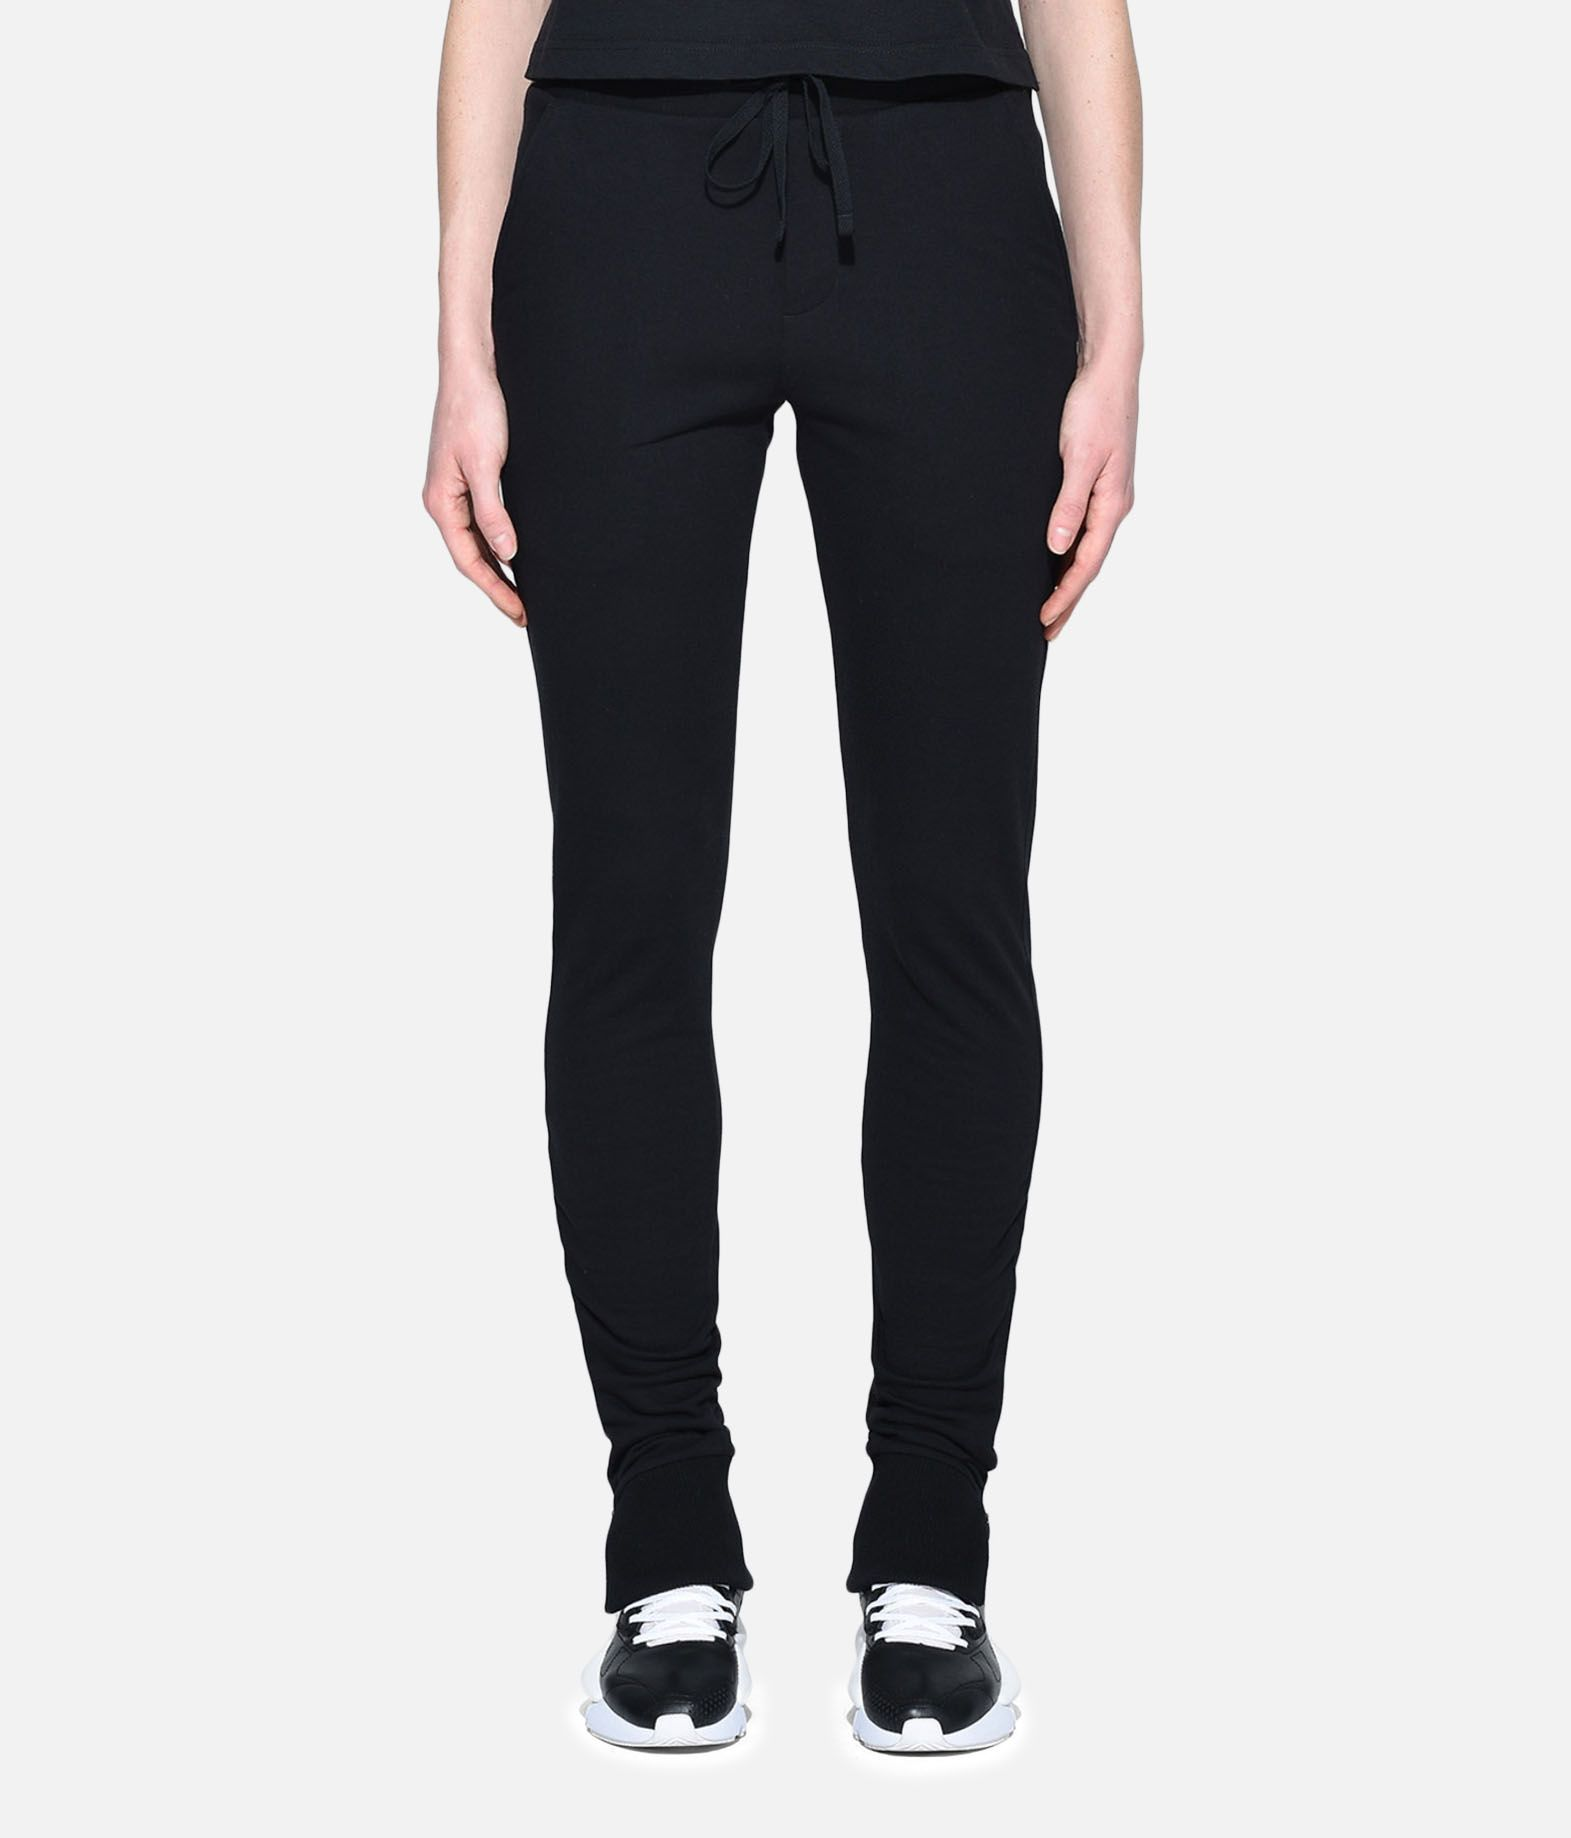 Y-3 Y-3 Fleece Slim Pants Casual pants Woman r